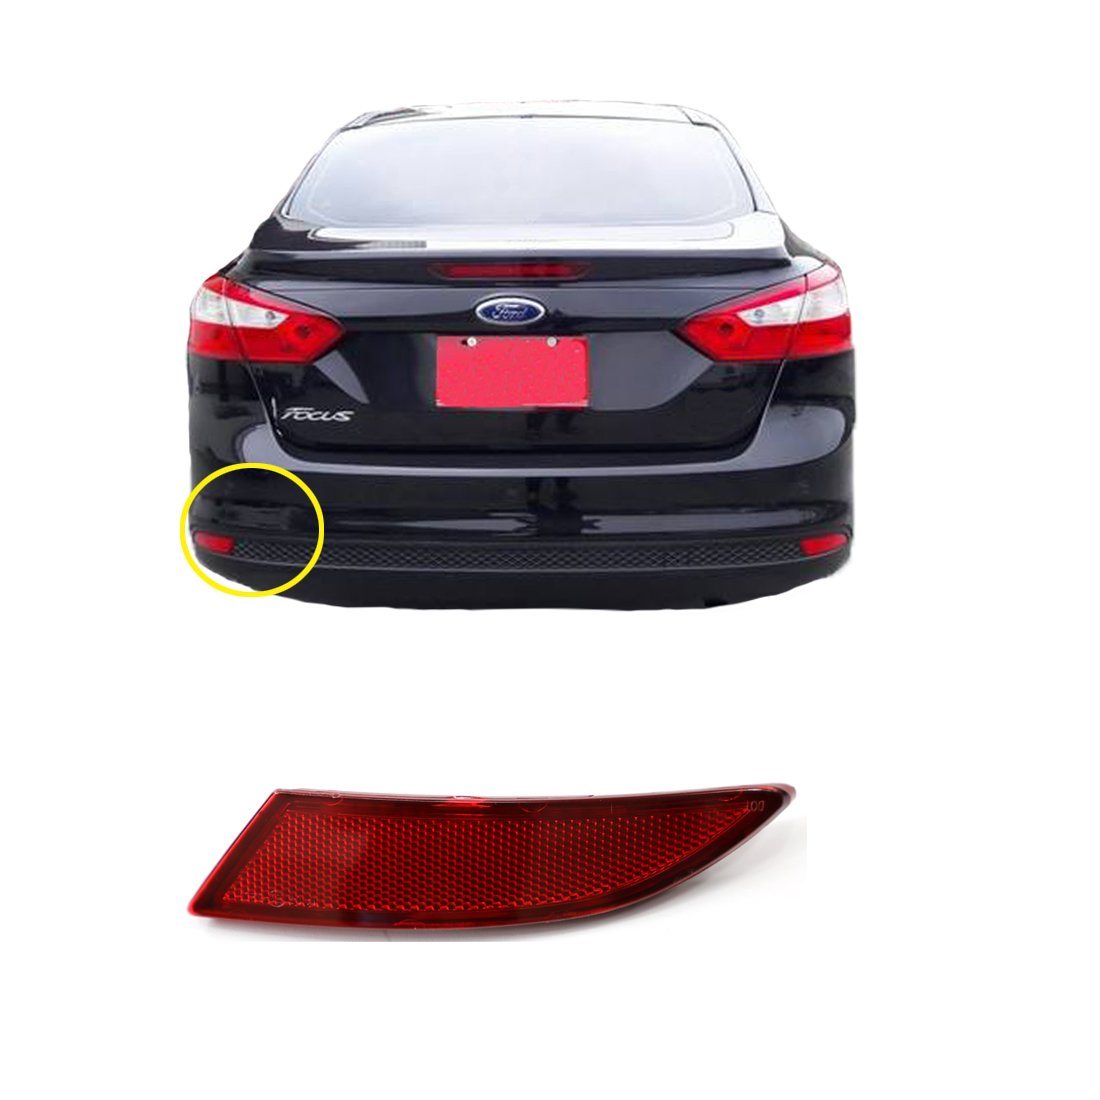 Vakabva BM5Z13A565B Rear Bumper Reflector Left for 2012-2017 Ford Focus Sedan